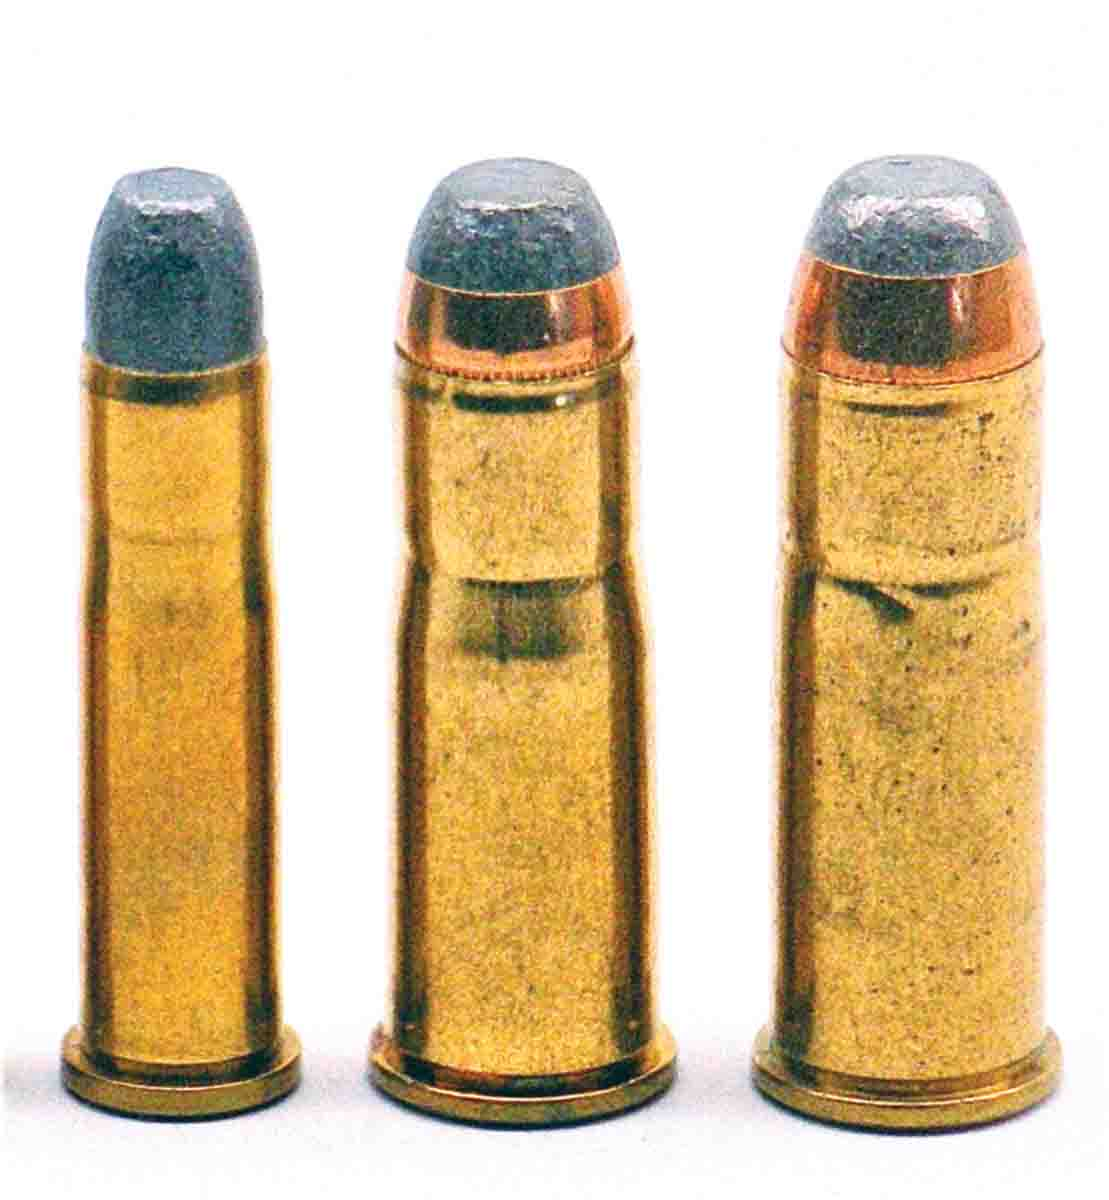 The M73 was first chambered for .44 WCF (right) followed by .38 (center) and .32 WCF (left) in 1879 and 1882, respectively.